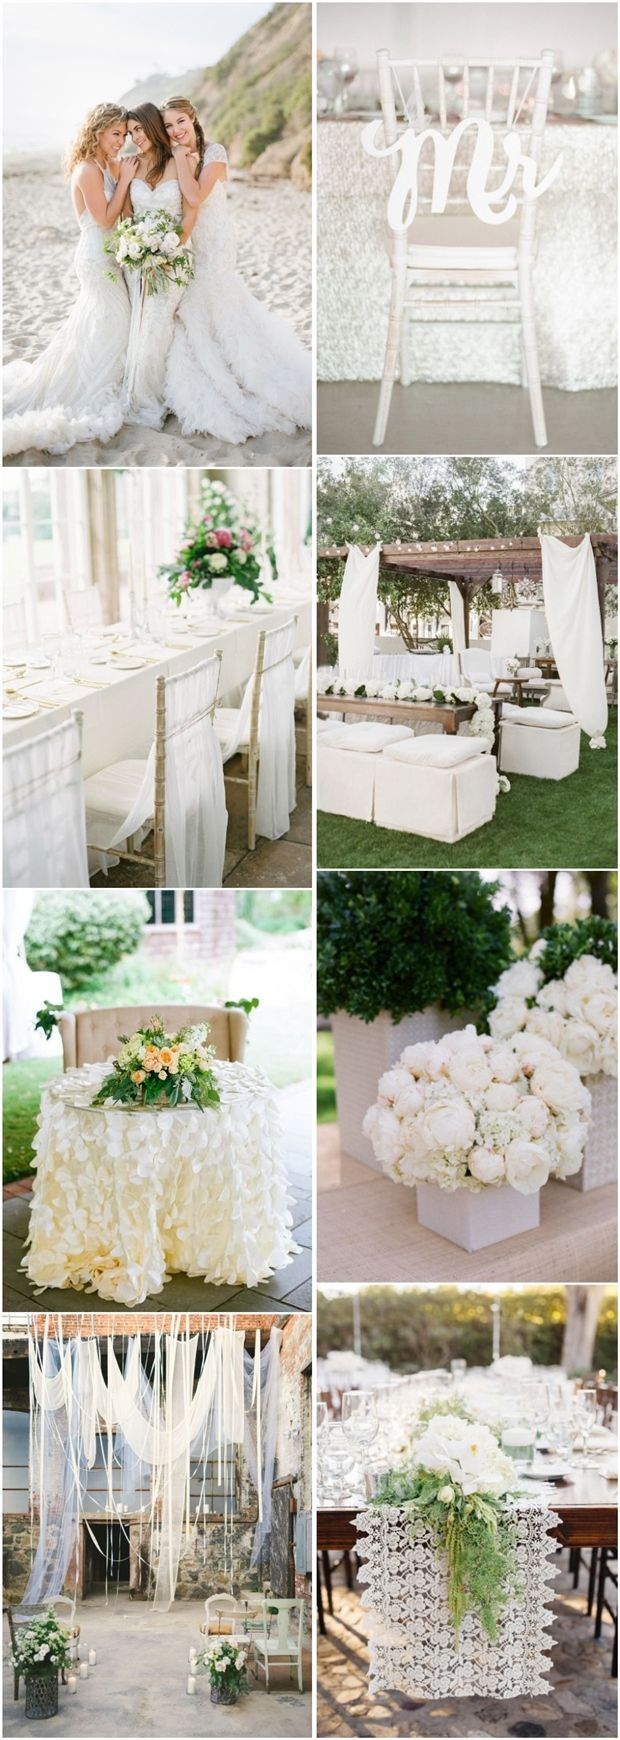 199 best Colors and Themes images on Pinterest | Color palettes ...